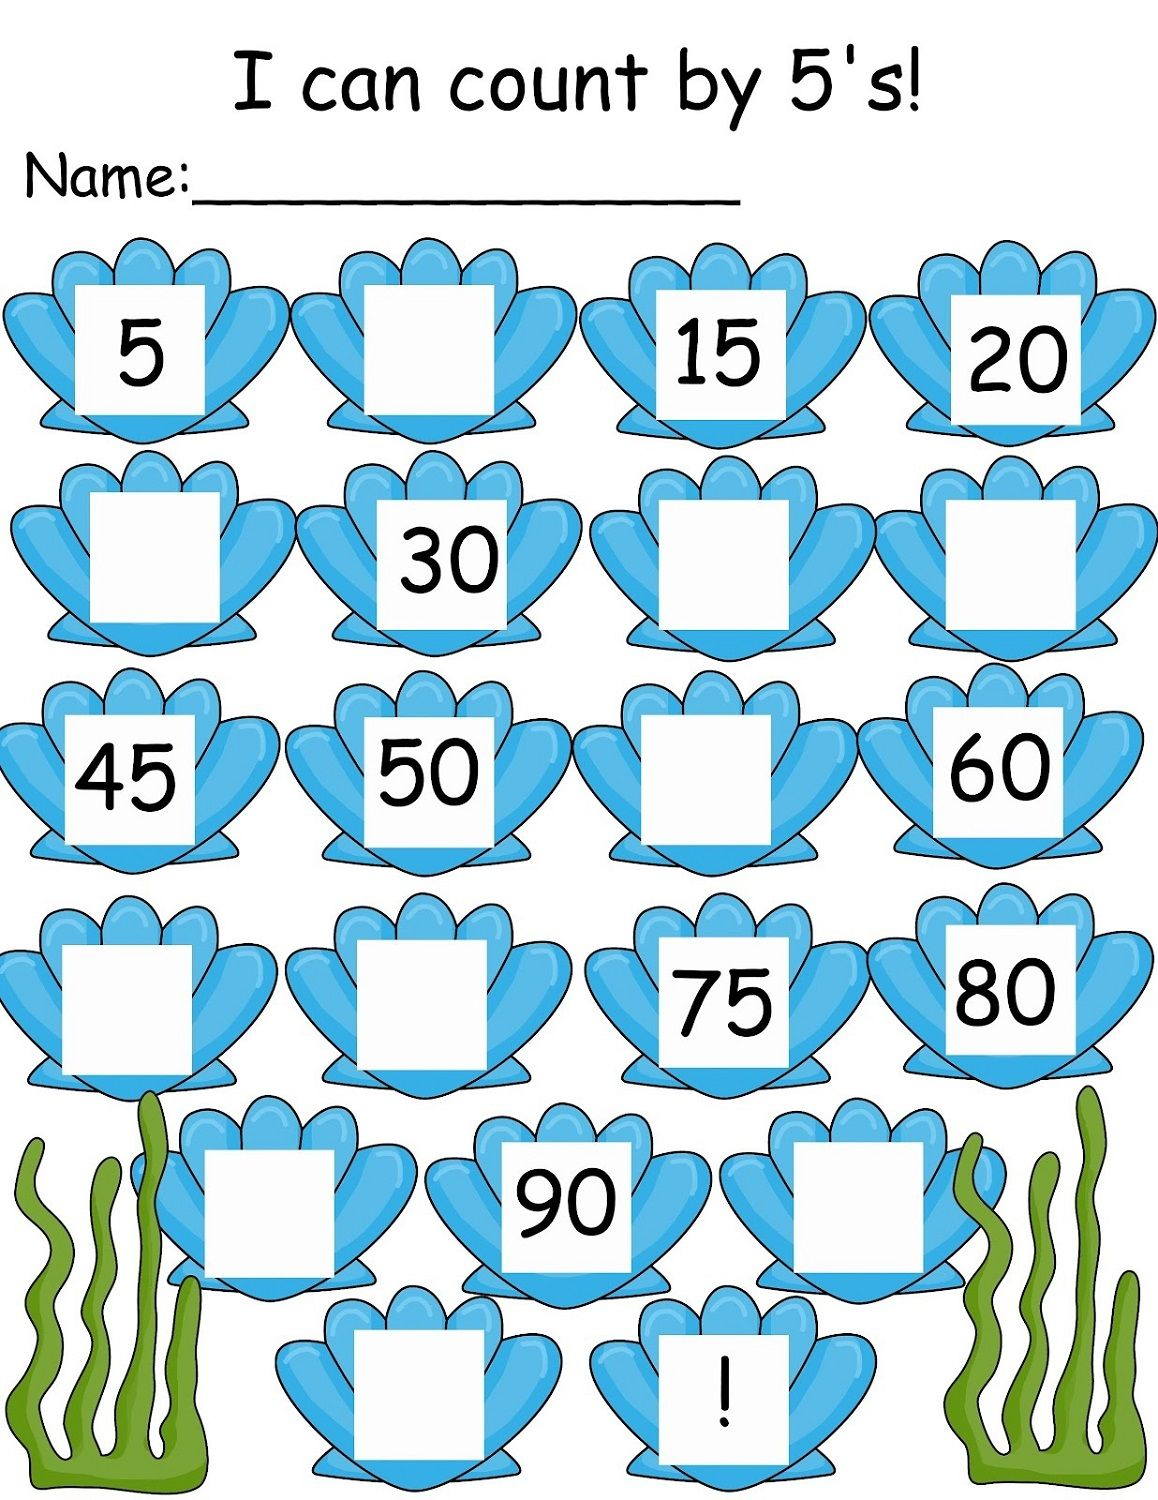 Count By 5 Worksheet